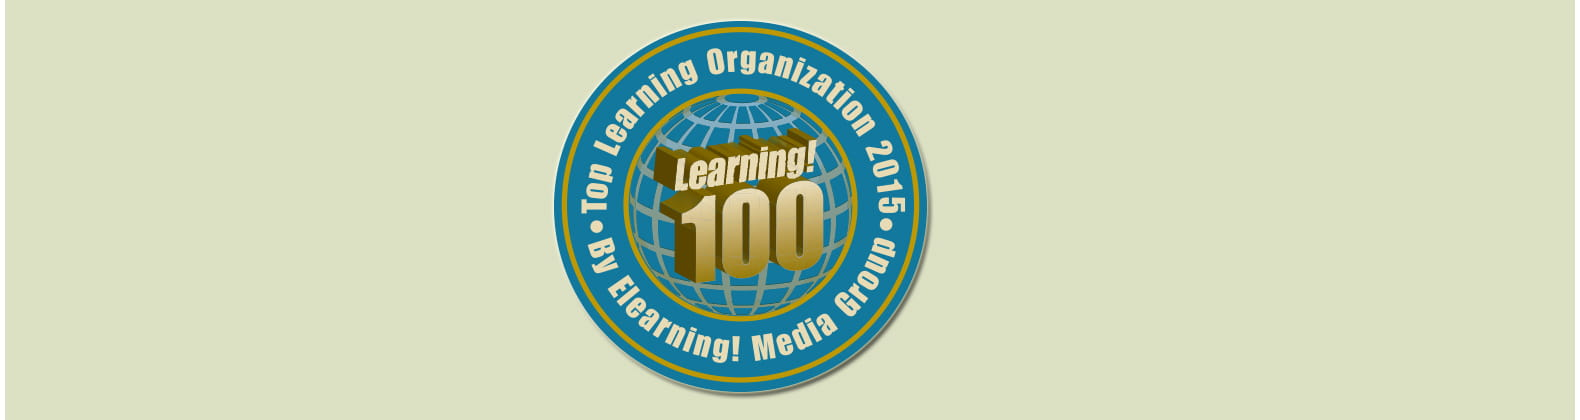 Elearning! Media Group (EMG) recognized Vi in annual Learning! 100 organizations